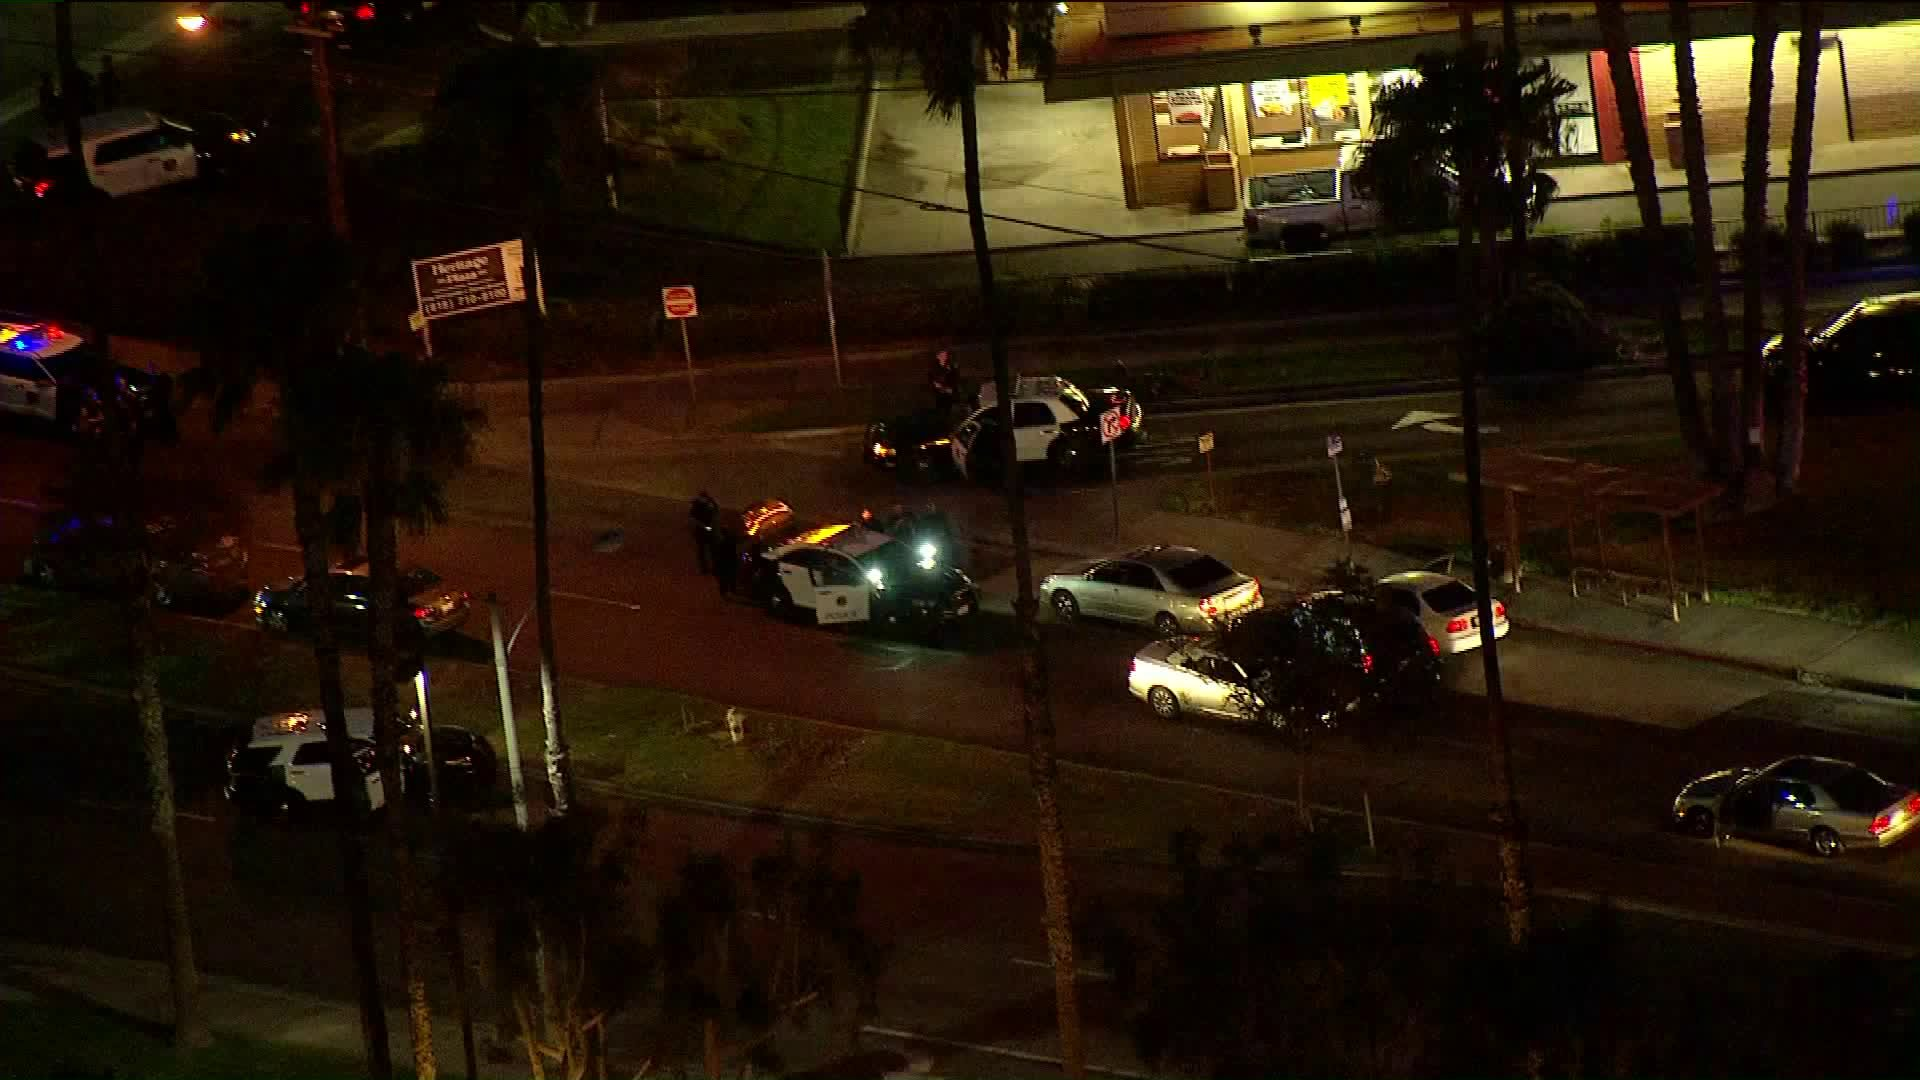 Authorities surround a vehicle in Riverside after a chase. (Credit: KTLA)